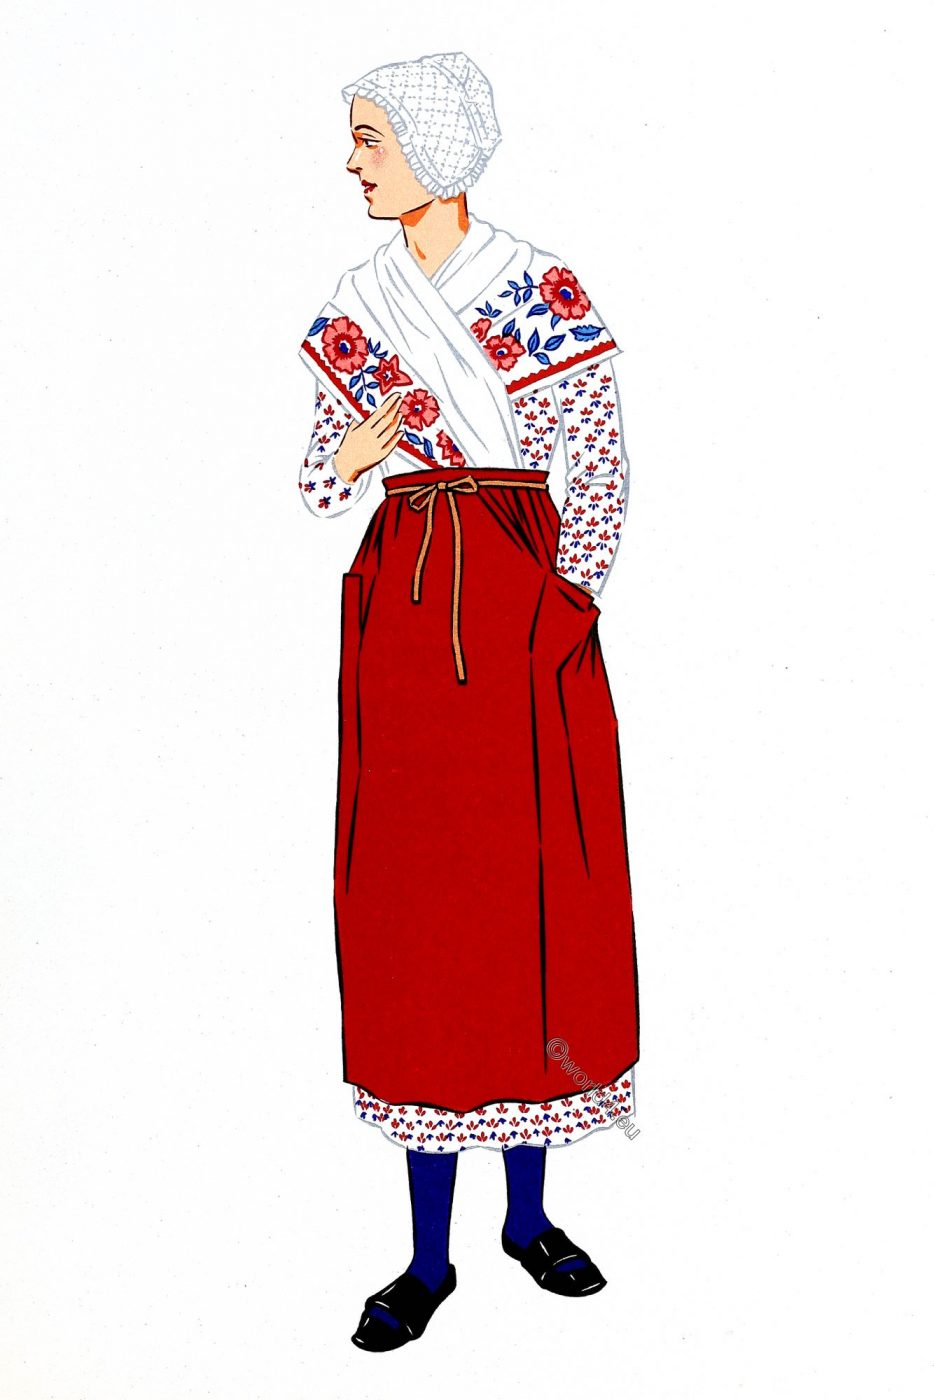 Burgundy, costume, traditional clothing, woman, France